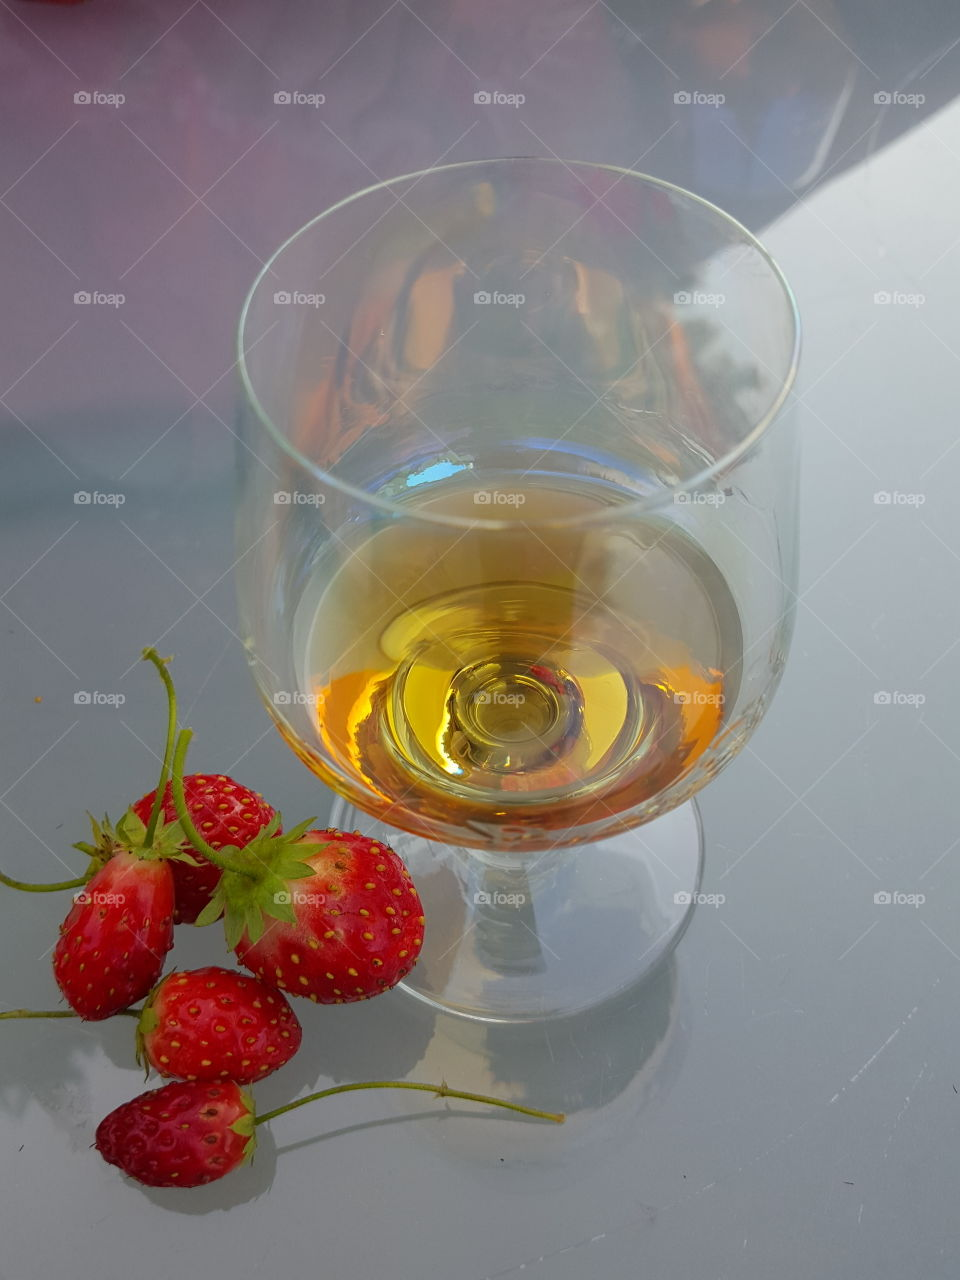 liqueur and strawberries